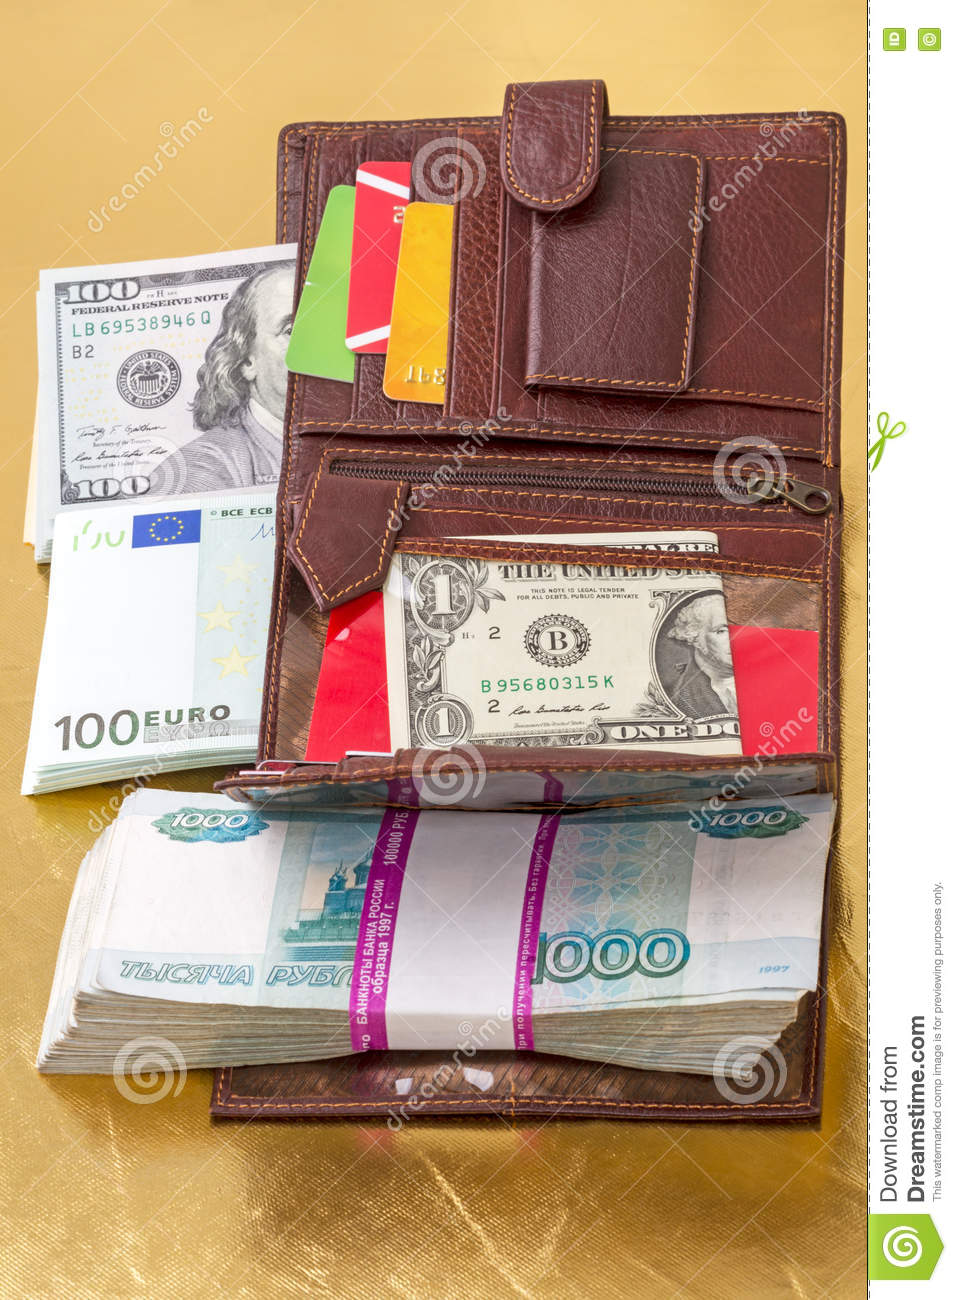 Wallet with paper money and credit cards